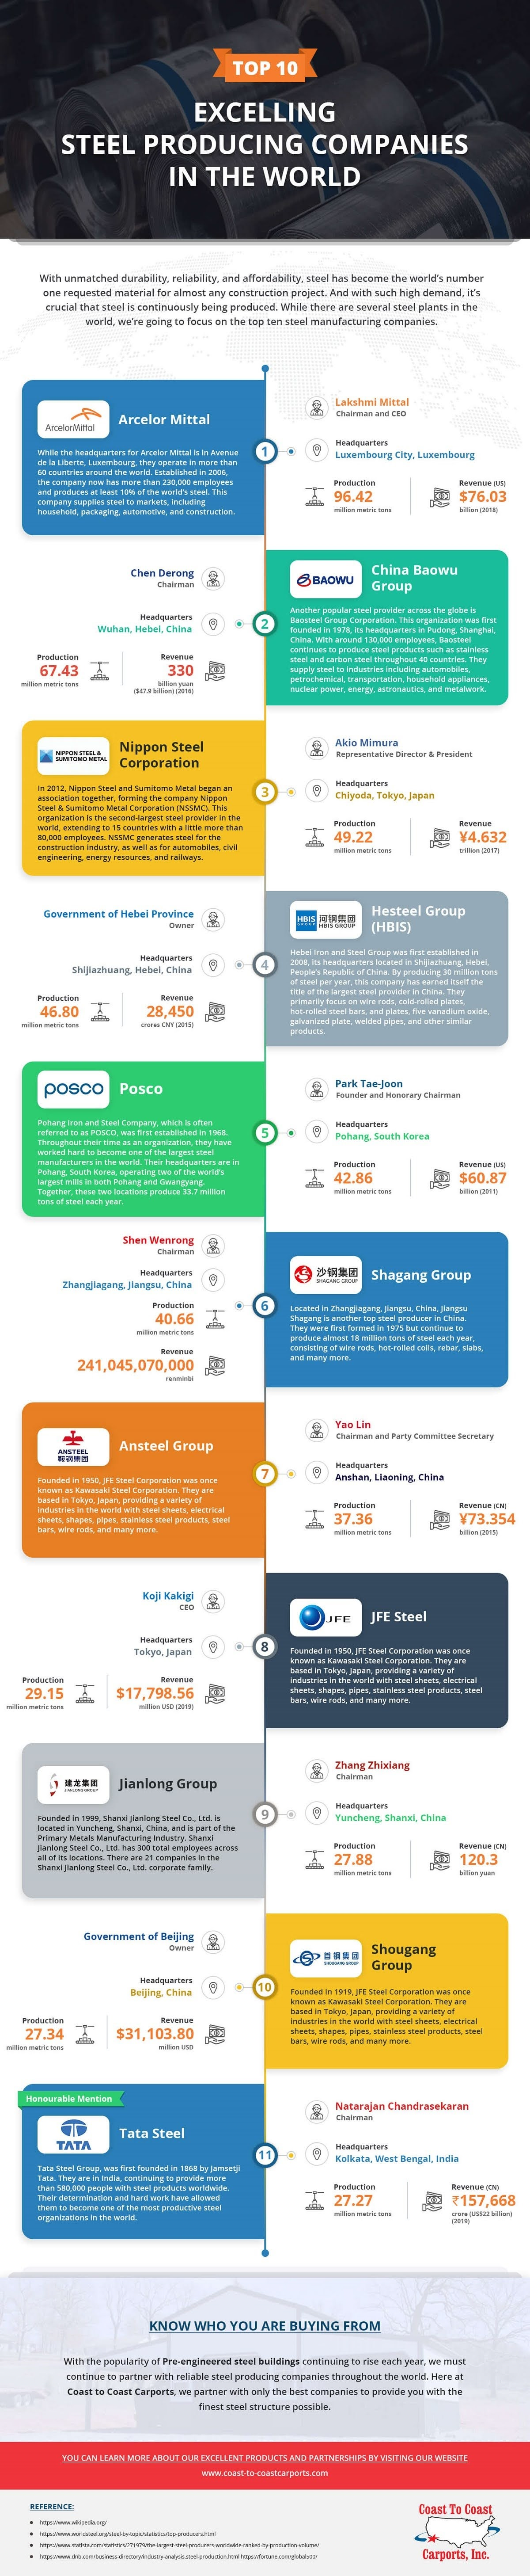 top-10-excelling-steel-producing-companies-in-the-world-infographic